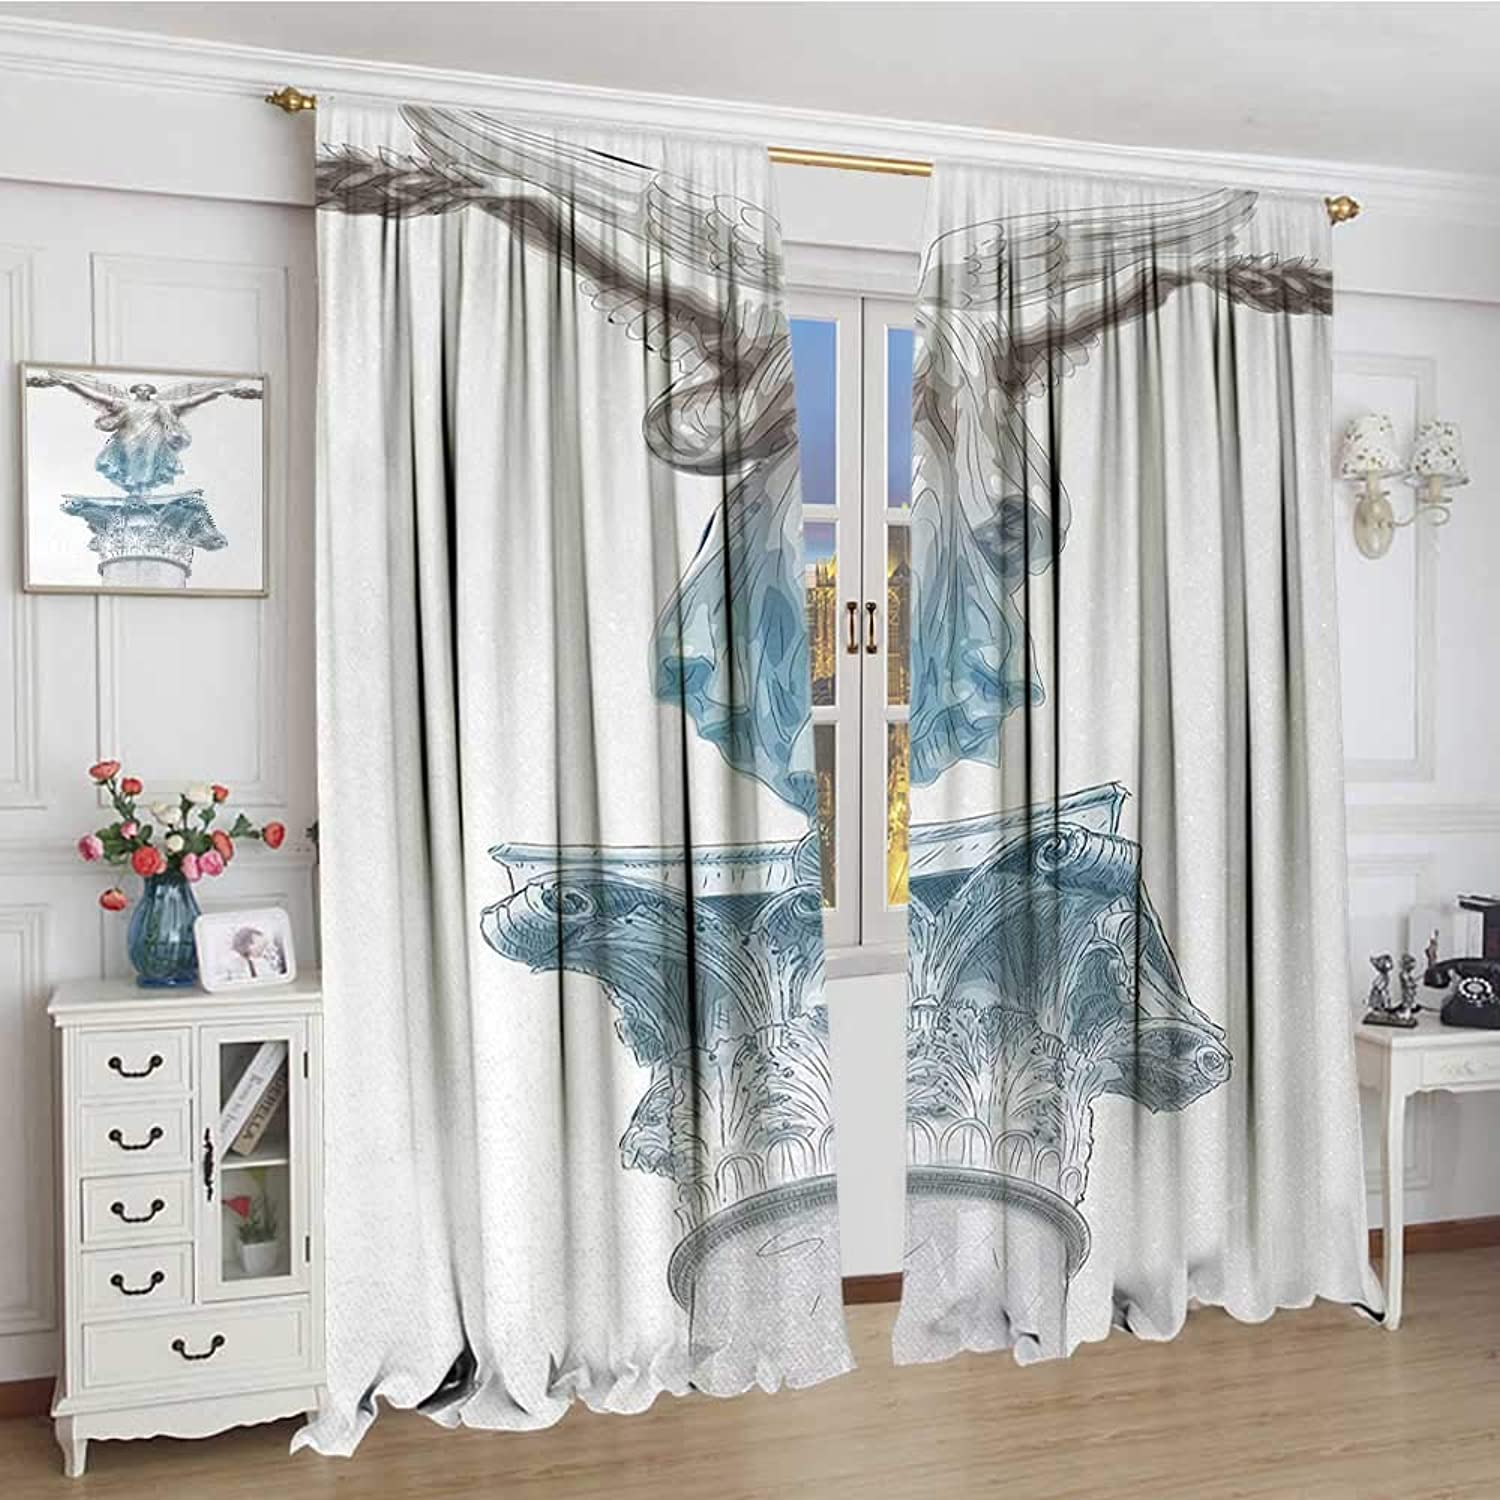 Smallbeefly Toga Party Window Curtain Fabric Antique Muse Statue Athens Hellenistic Period Mythological Monument Art Lengthened Drapes Living Room 84 x108  Pale bluee Umber